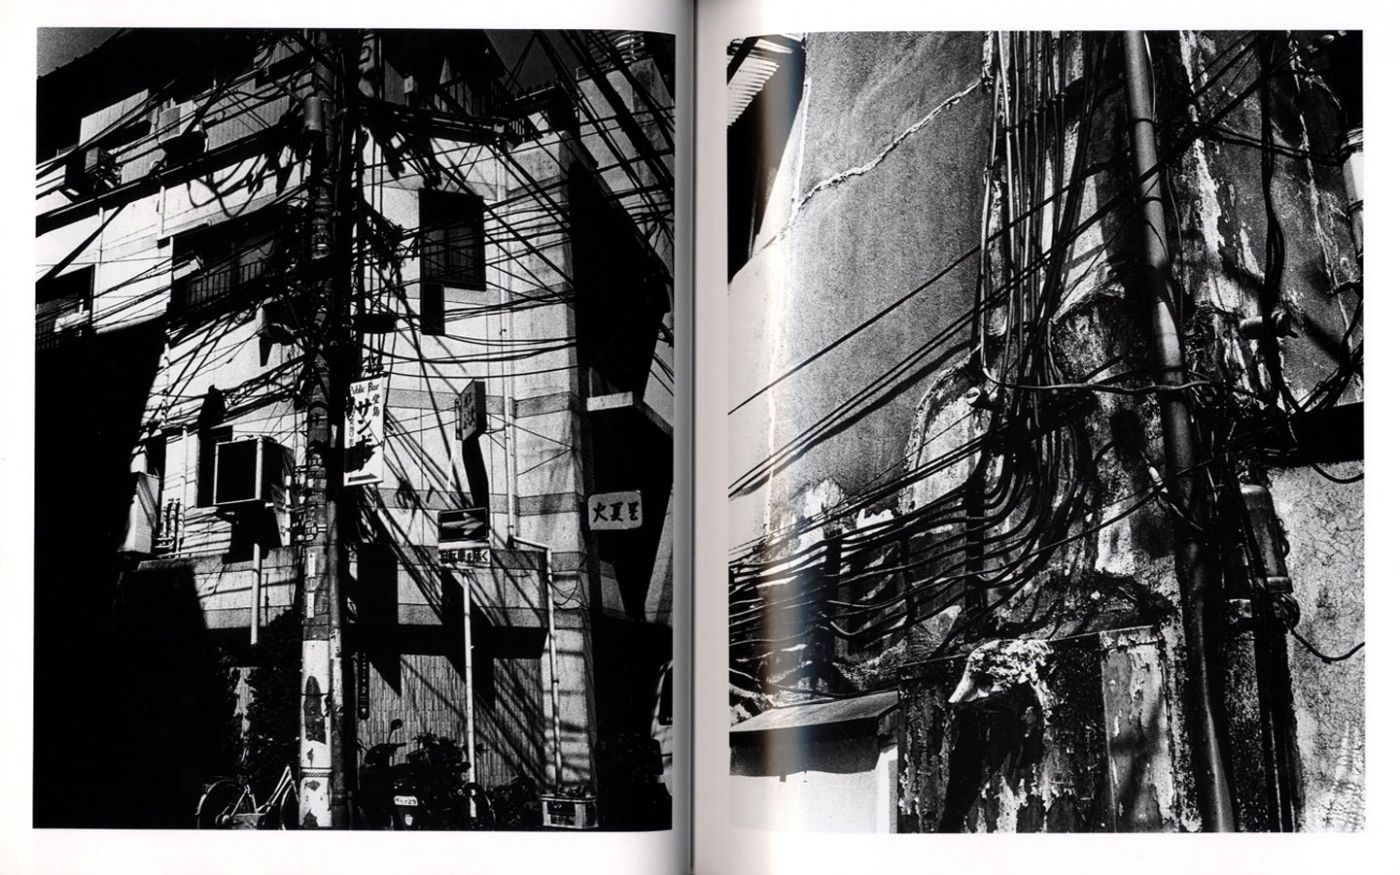 Fragments: Representation of Moriyama Daido 1964-1998 [SIGNED]